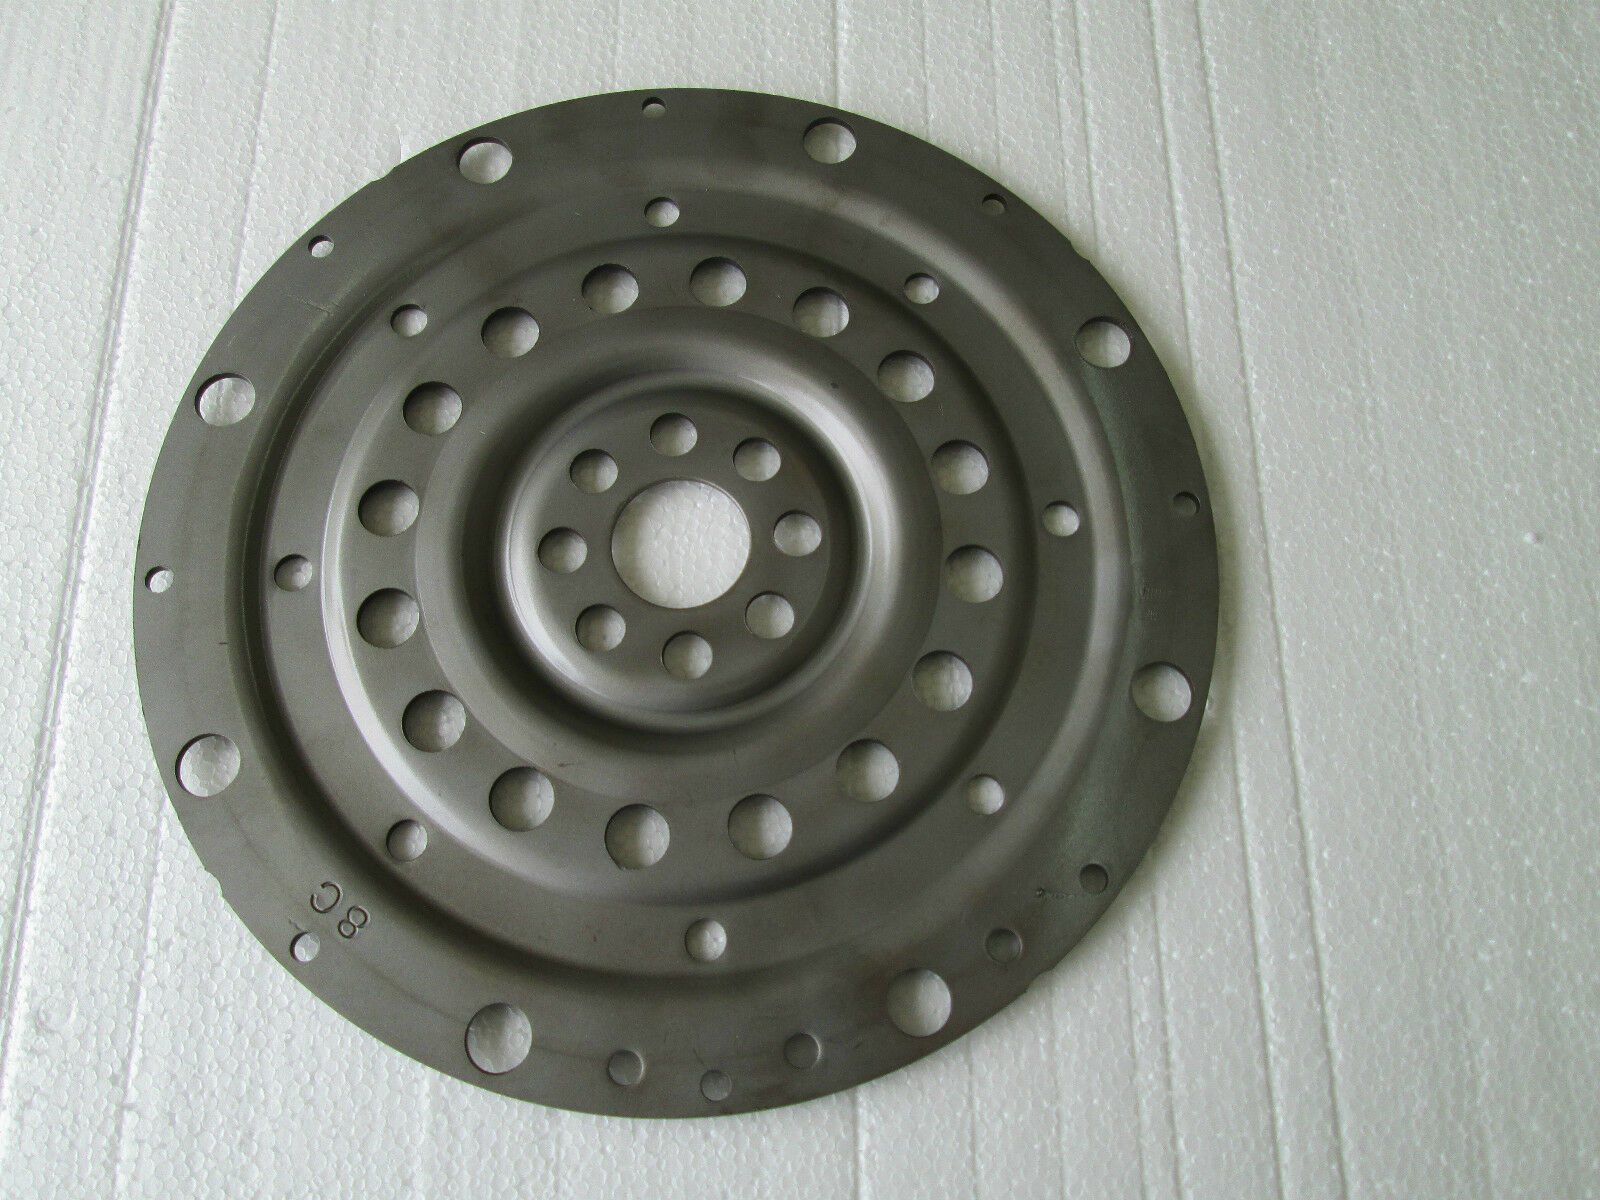 hight resolution of this item will fit on a 98 99 00 01 02 03 04 honda accord 3 0l v6 97 98 99 acura cl 3 0l v6 fly wheel flex plate in a very good working condition